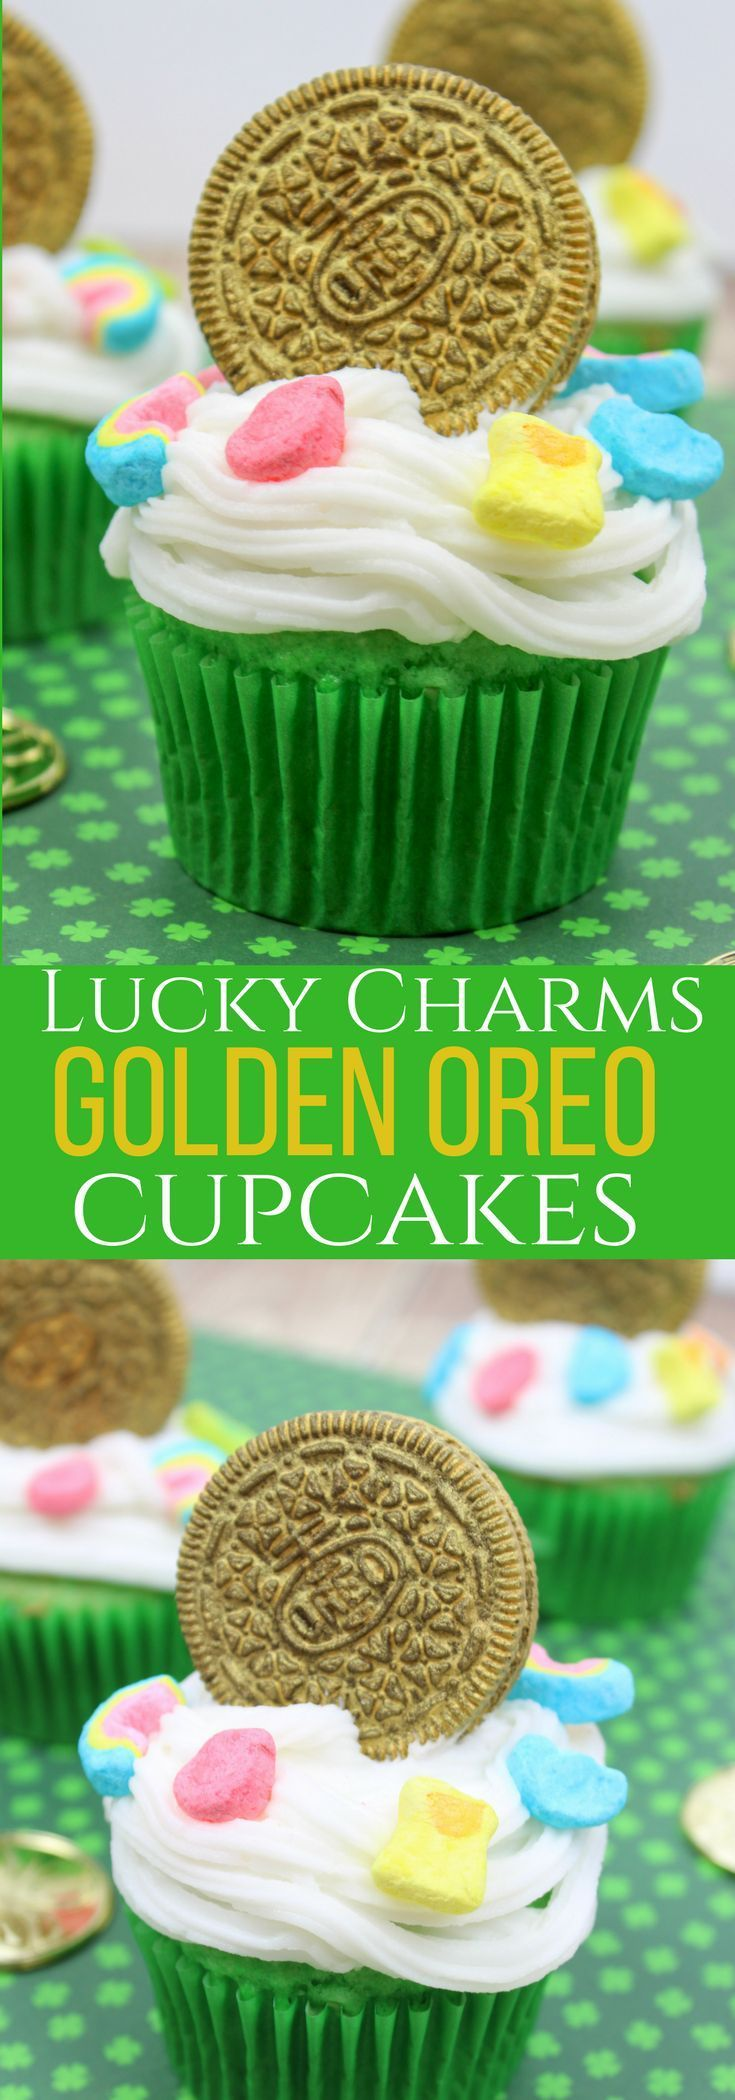 This Lucky Charms Golden Oreo Cupcake is a perfect St. Patricks Day recipe for kids classroom. Find the gold at the end of the rainbow with Golden Oreo desserts.